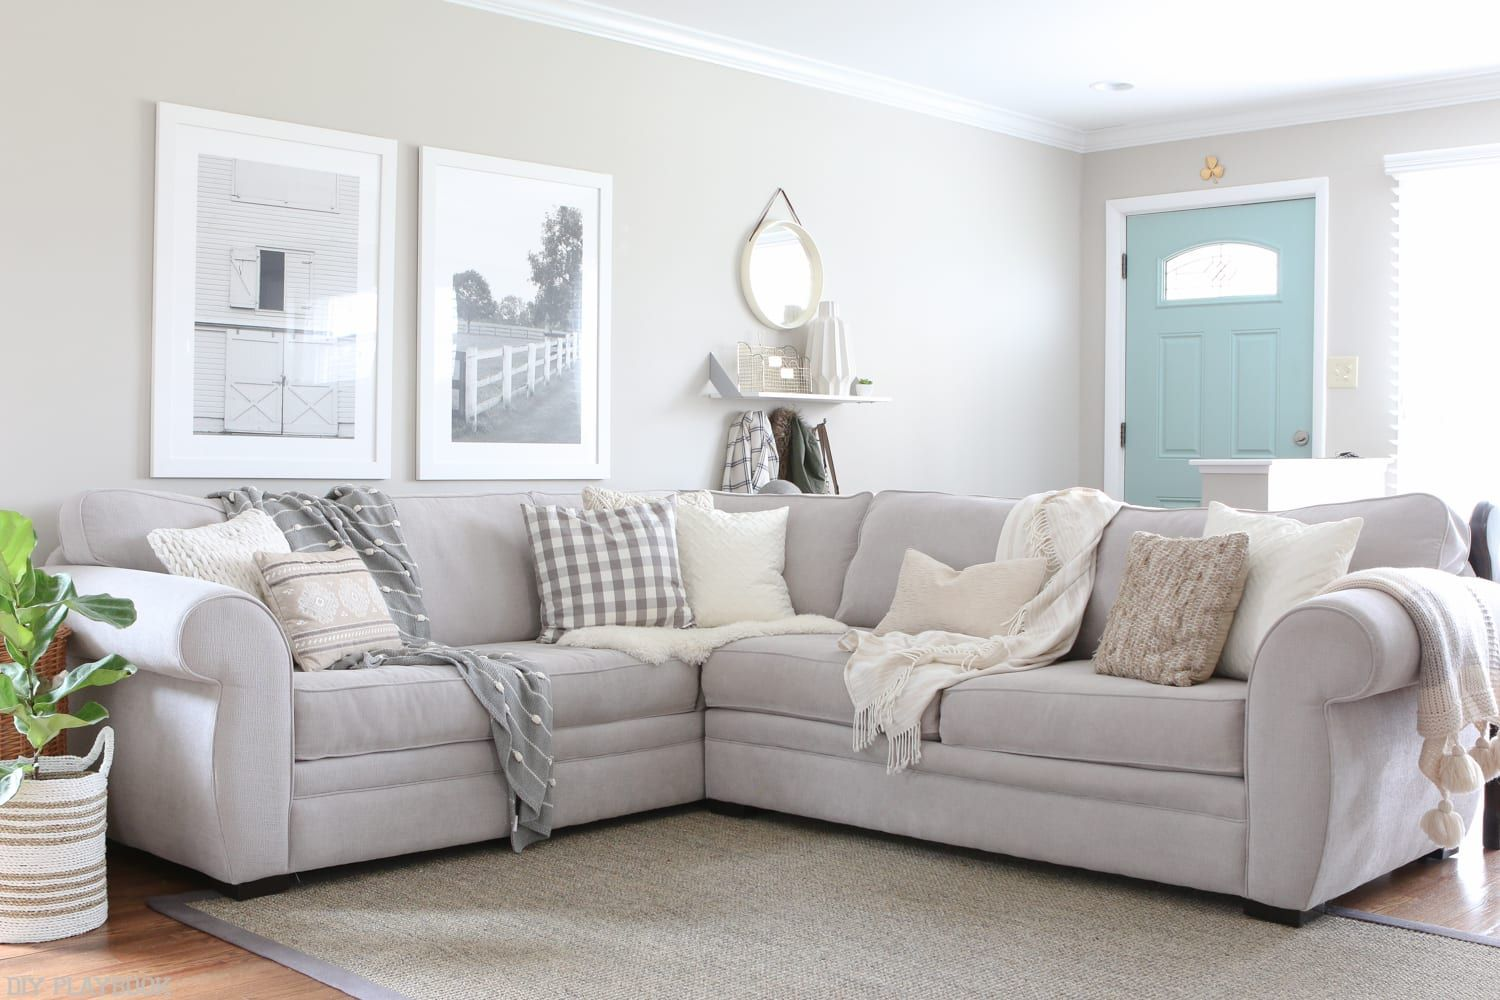 How to Choose Throw Pillows for a Gray Couch images